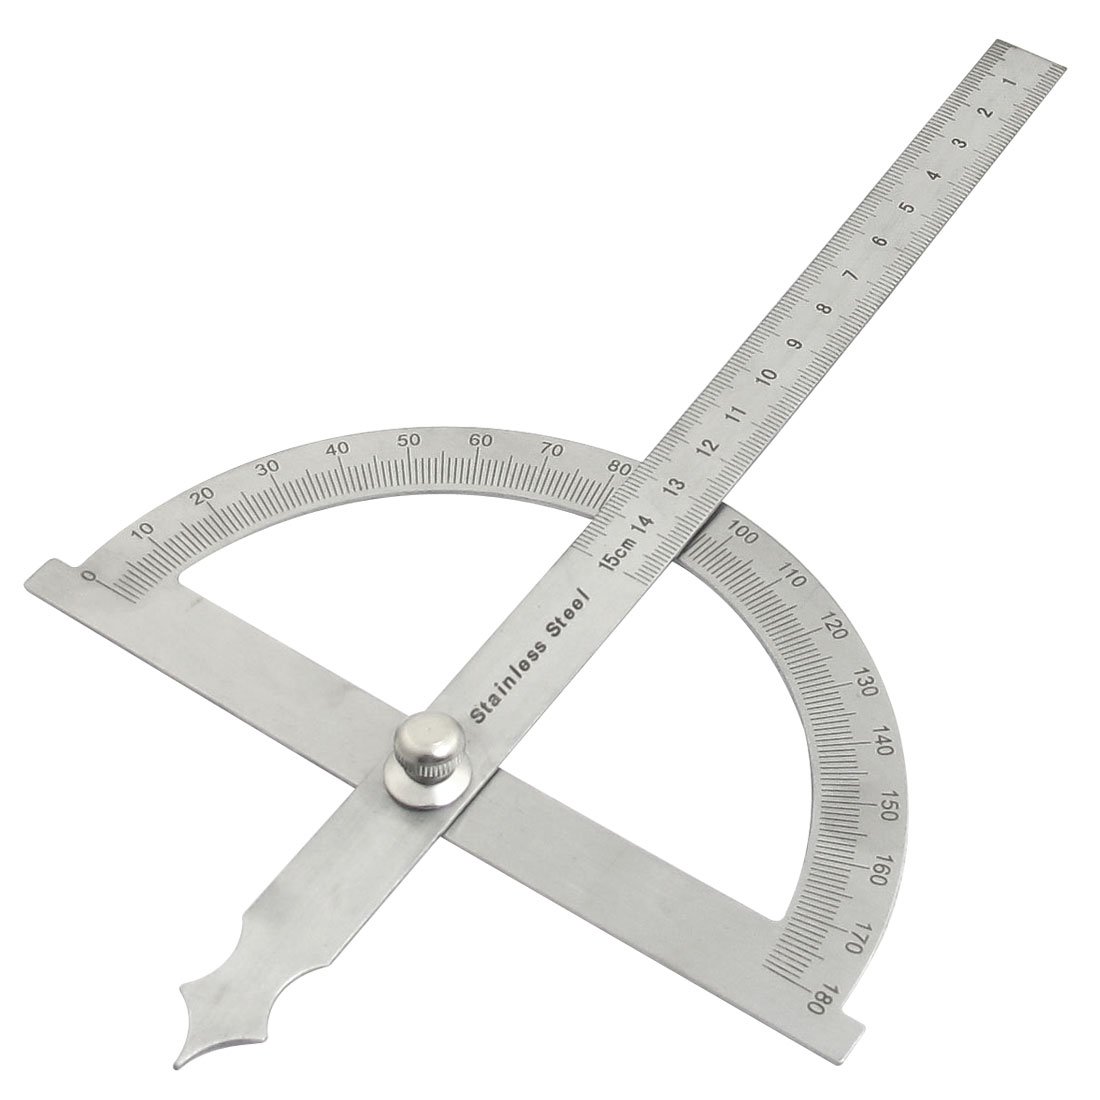 15cm Straightedge Rotating 180 Degree Measure Protractor Dual Purpose Ruler